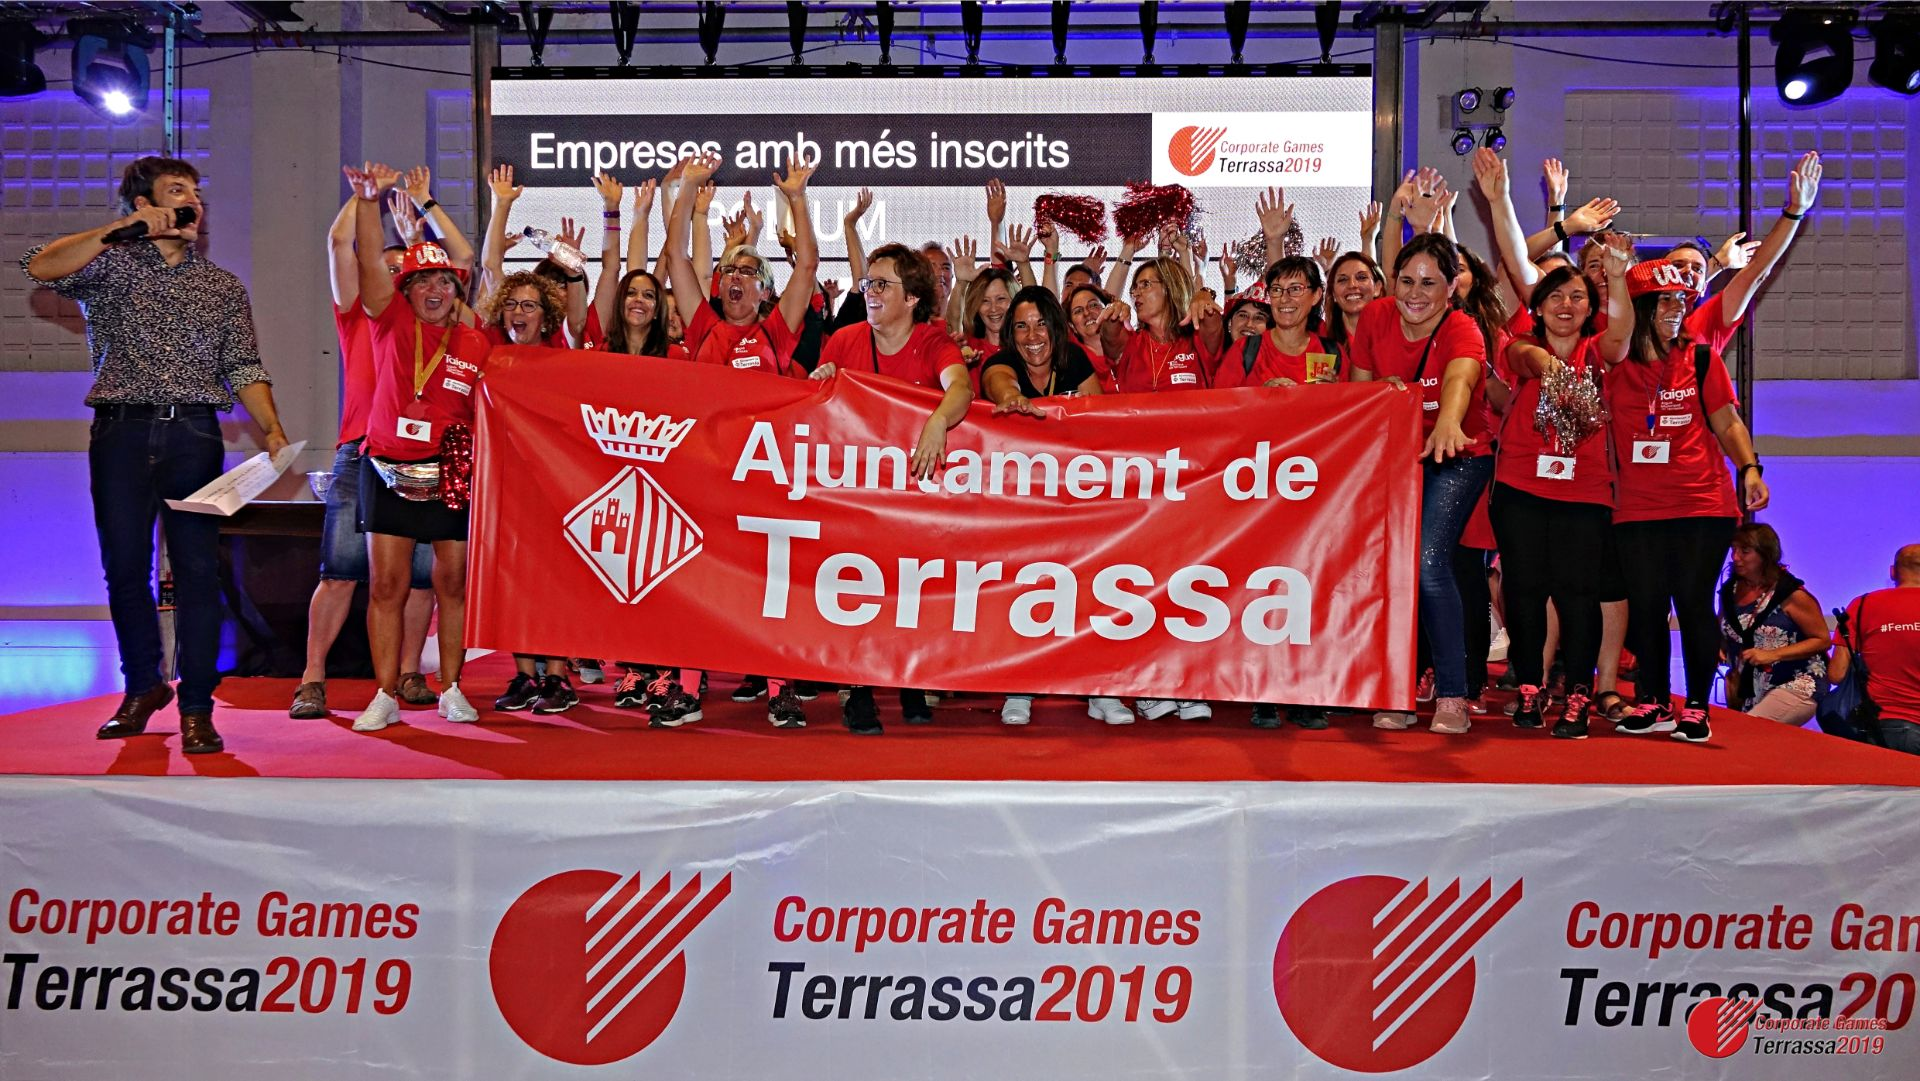 CORPORATE GAMES TERRASSA 2019-FAIRPALY-00852